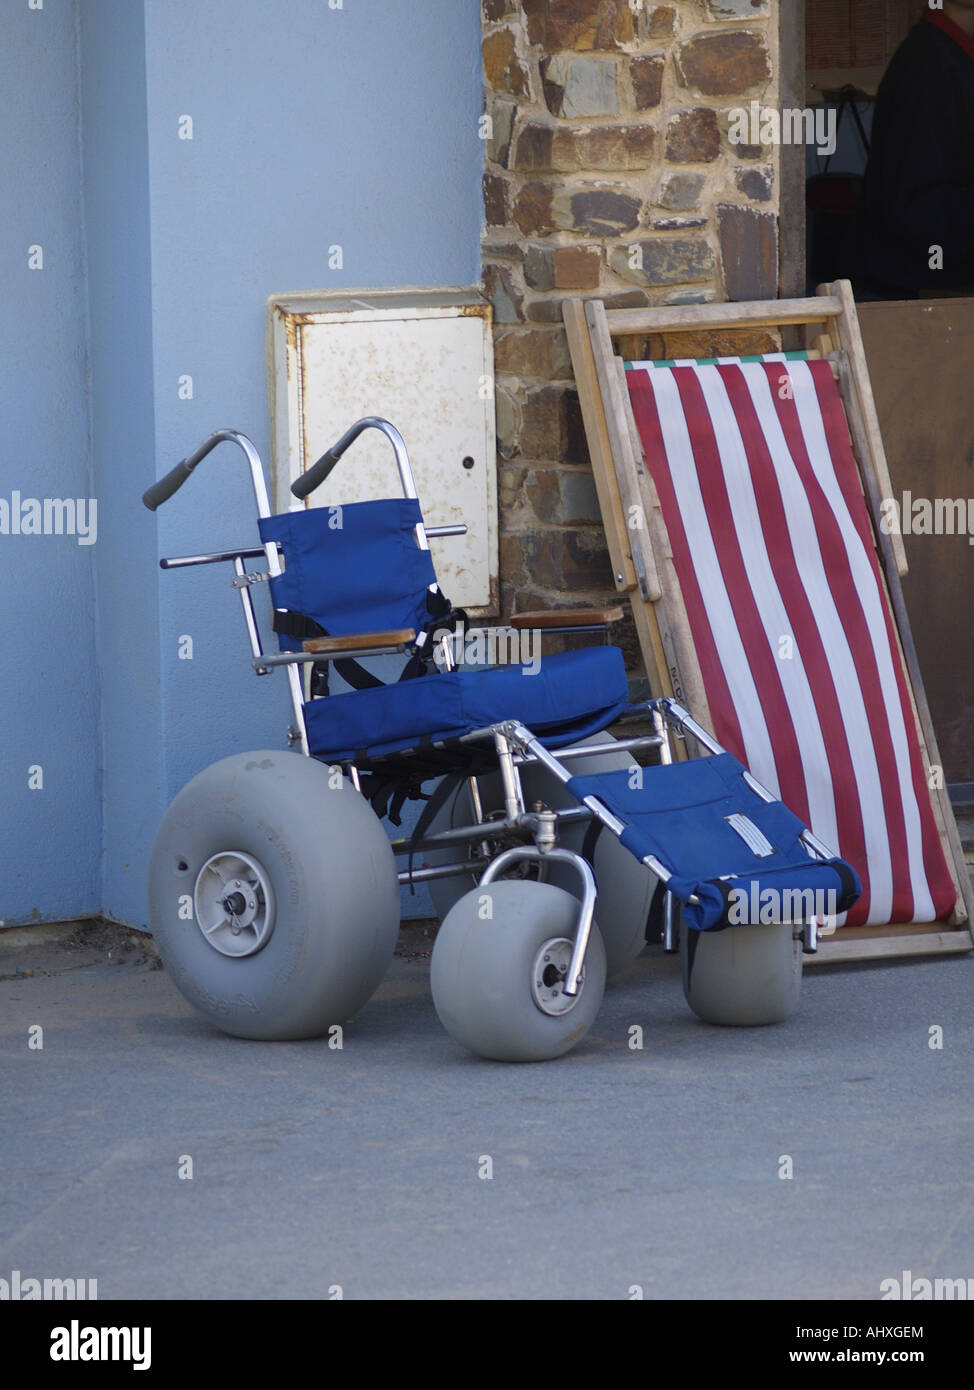 Off roading wheel chair for use at Crooklets beach. - Stock Image & Off Road Wheelchair Stock Photos u0026 Off Road Wheelchair Stock Images ...